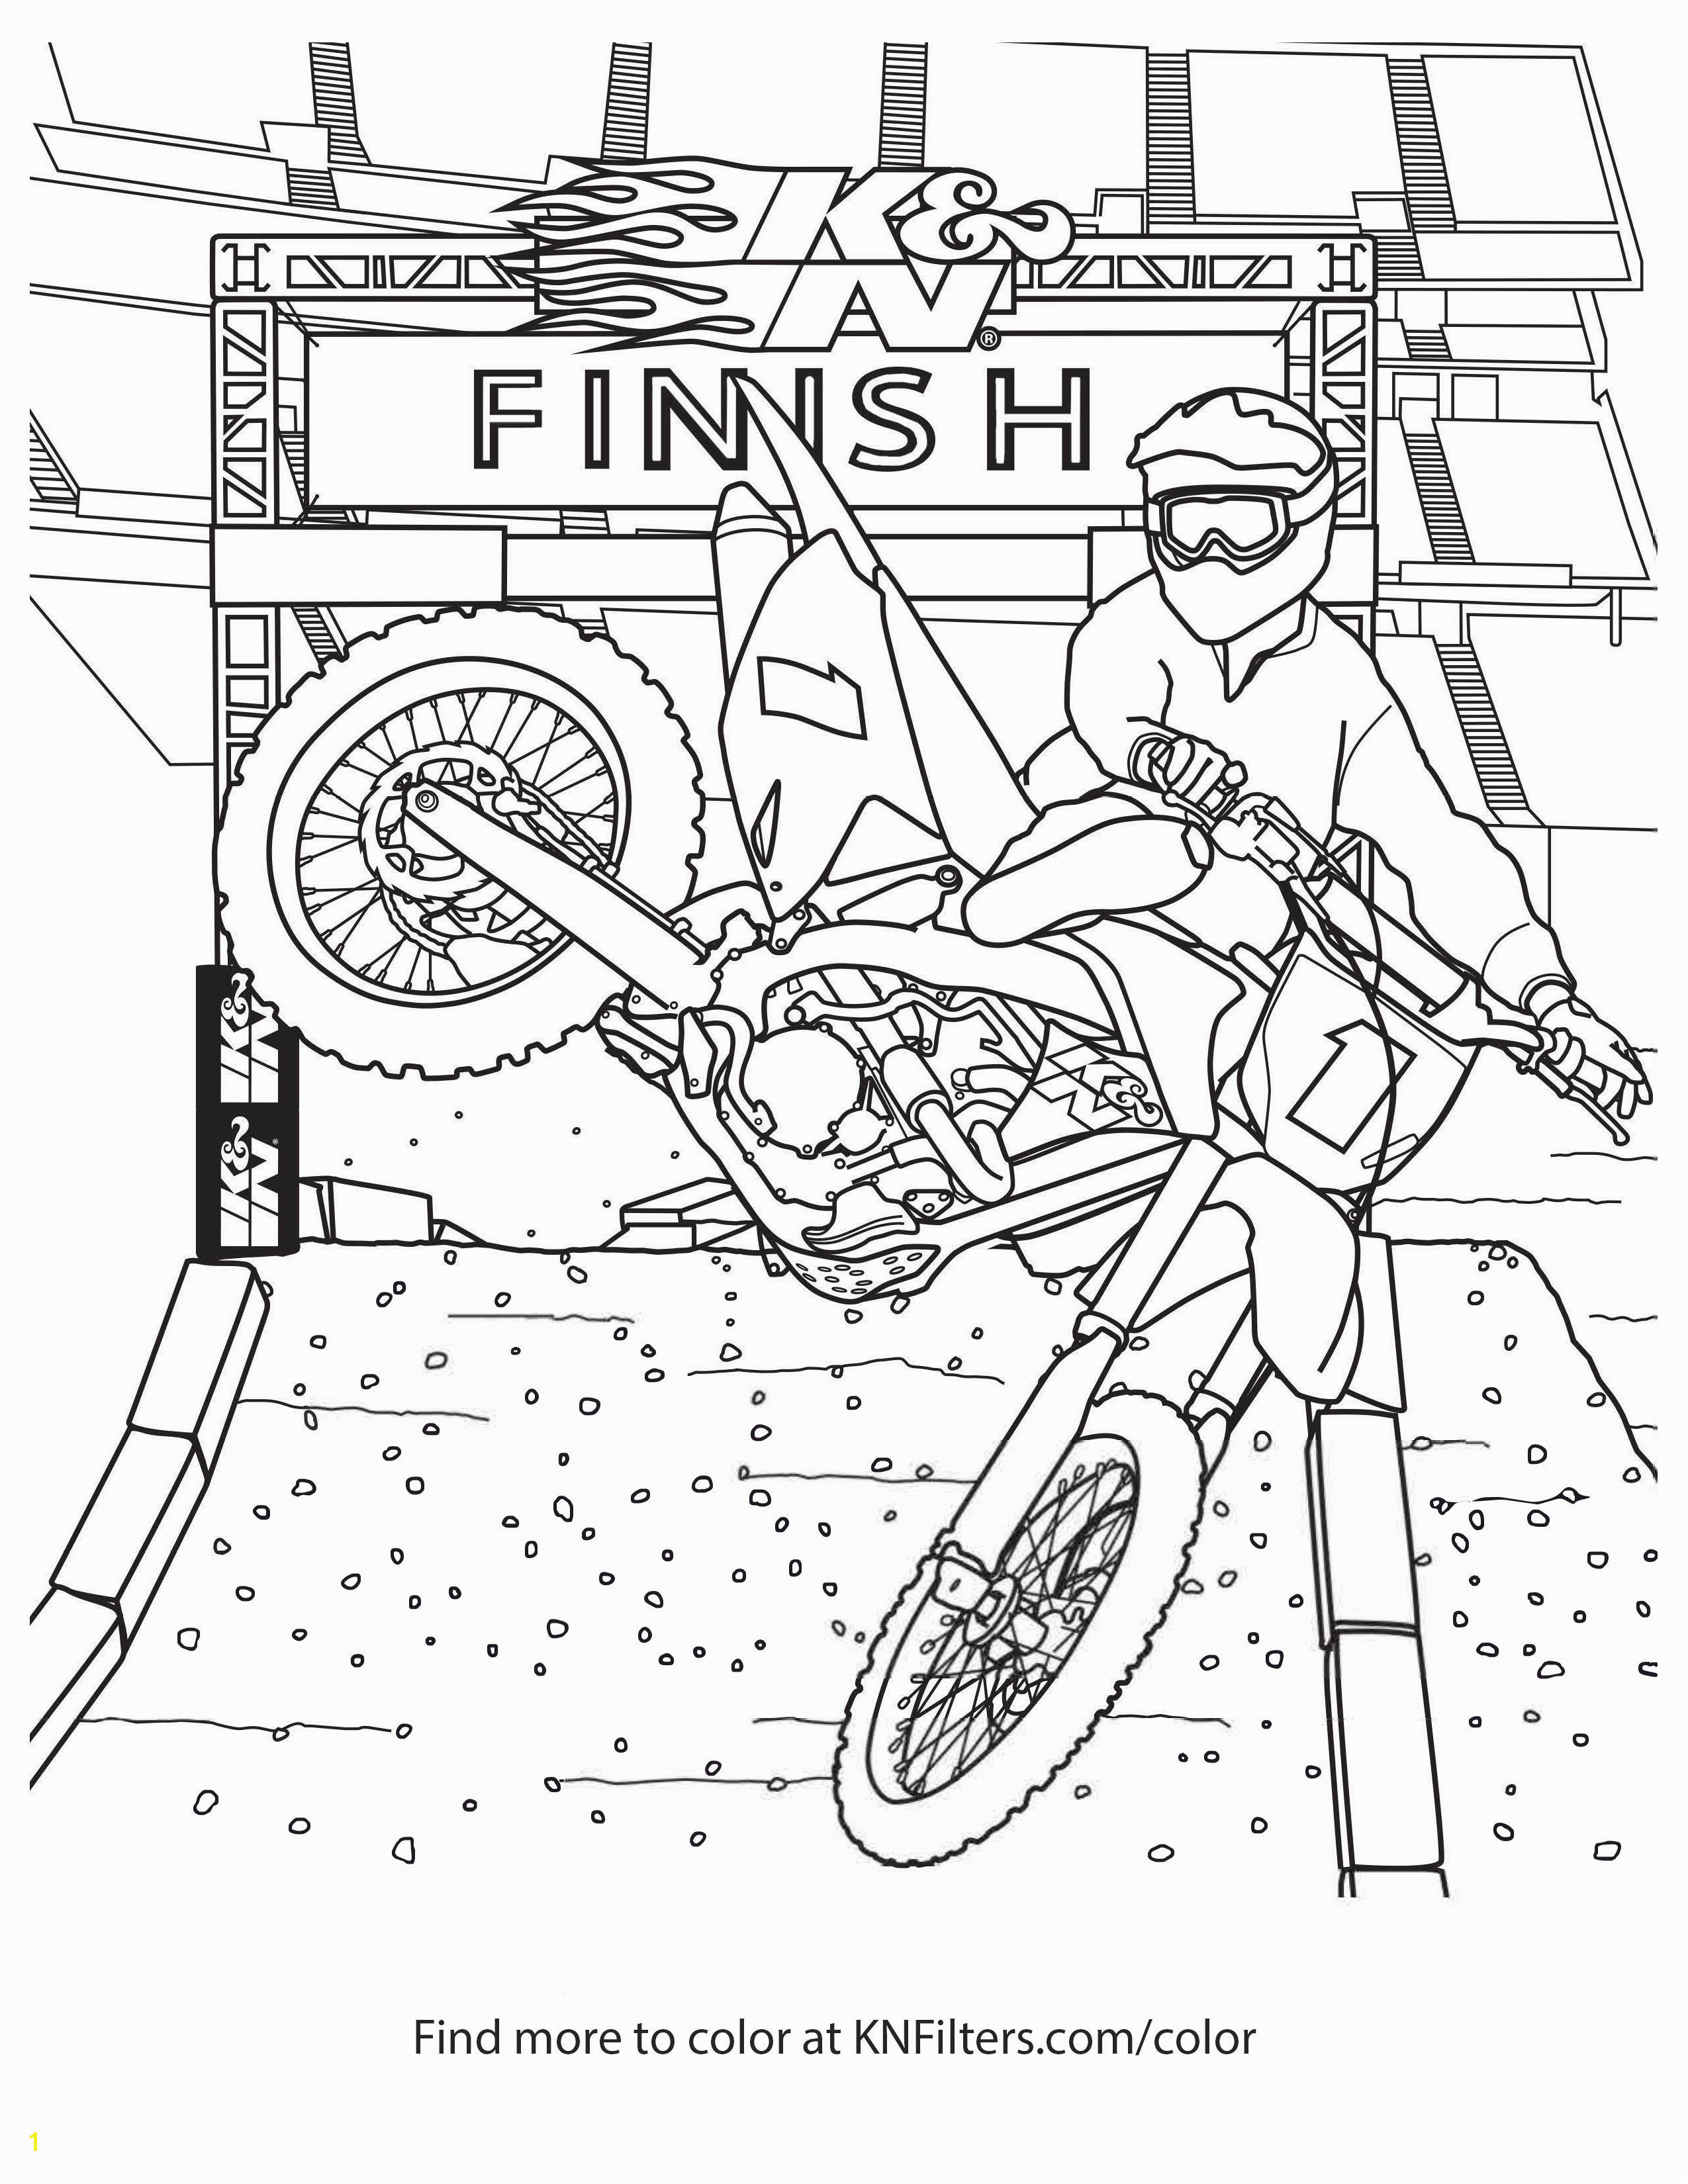 Honda Dirt Bike Coloring Pages K&n Printable Coloring Pages for Kids